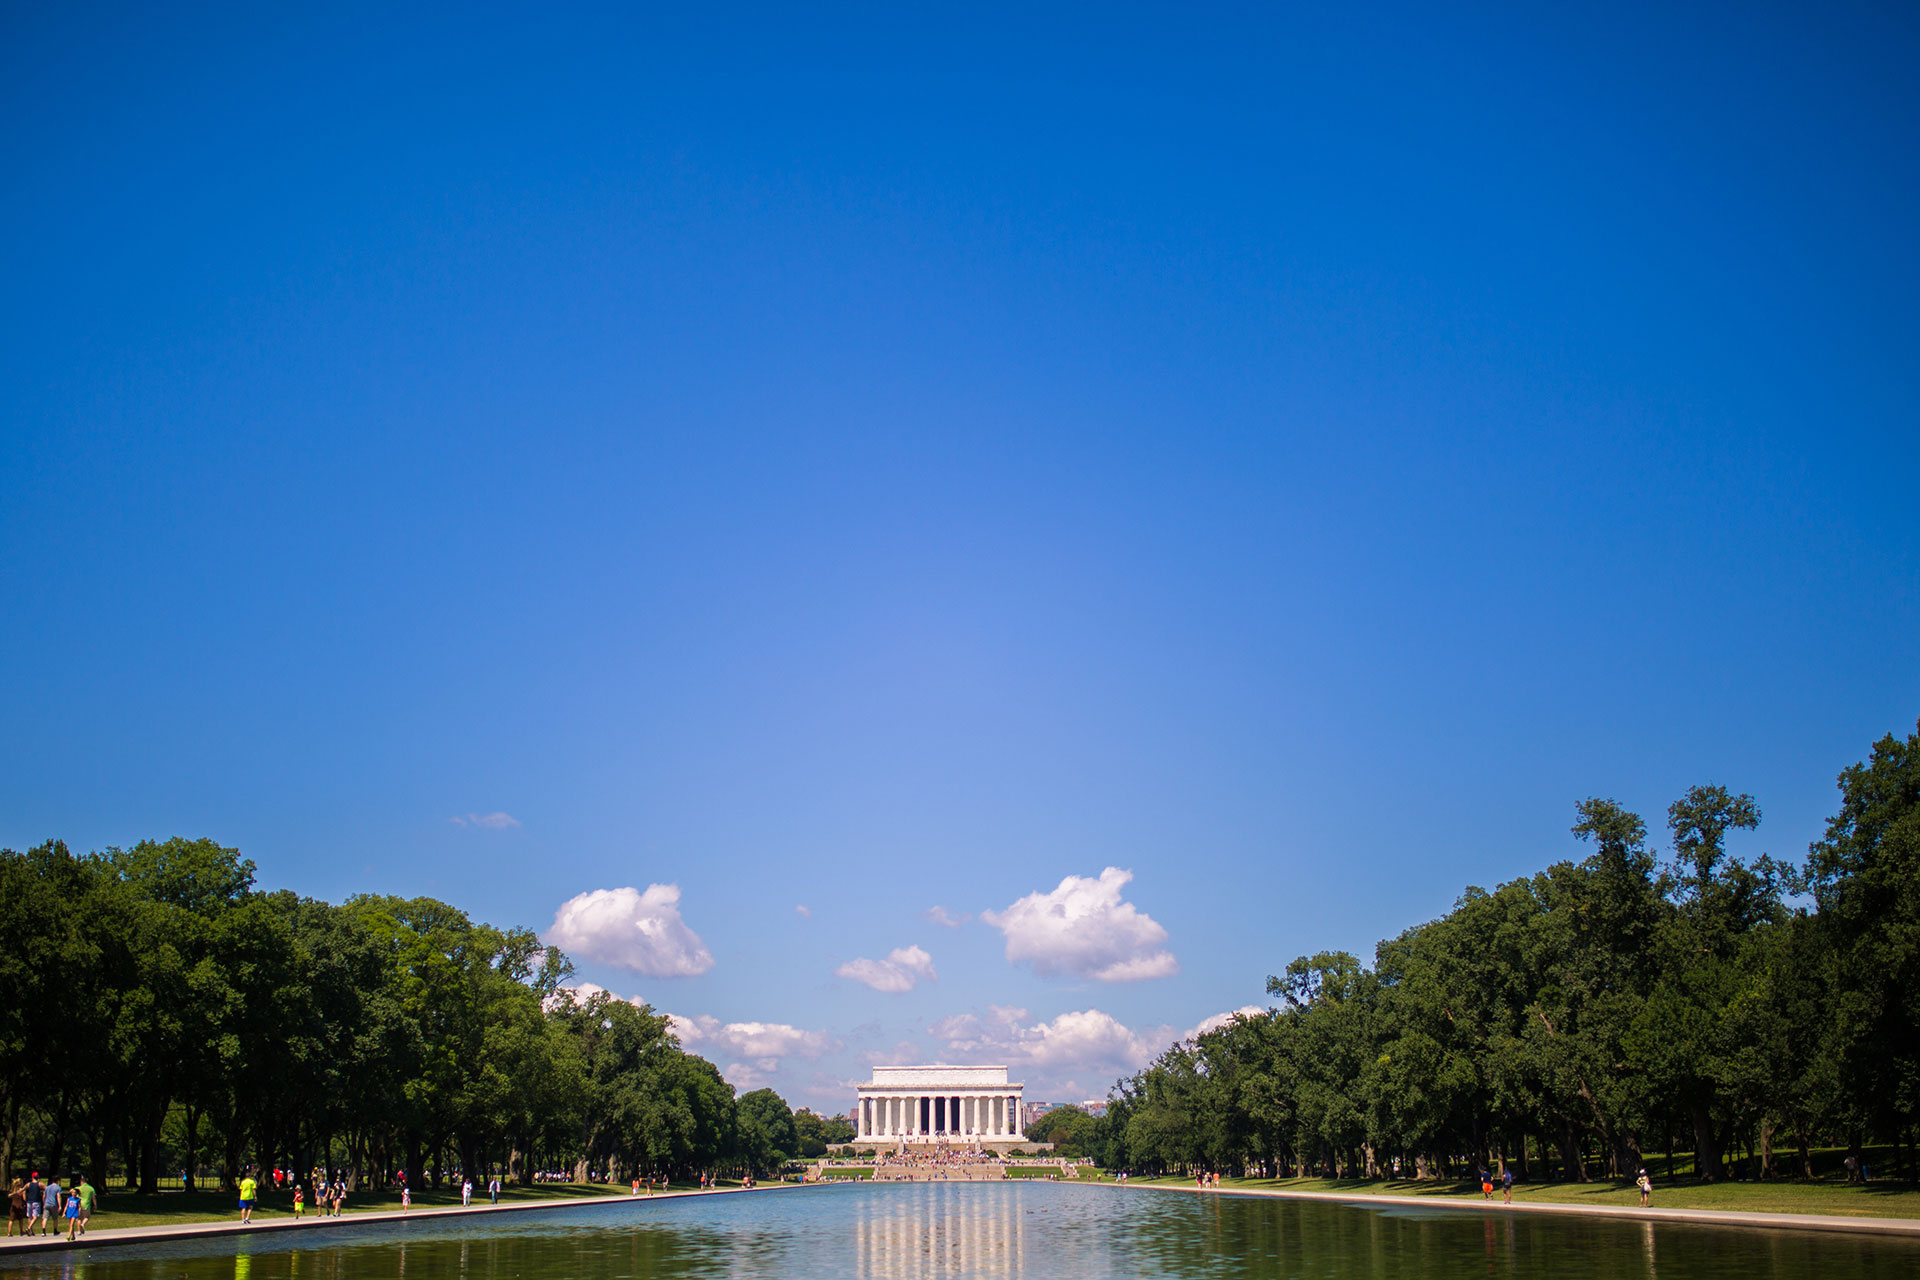 Lincoln Memorial Reflecting Pool with the Memorial itself in the background in Washington, D.C.